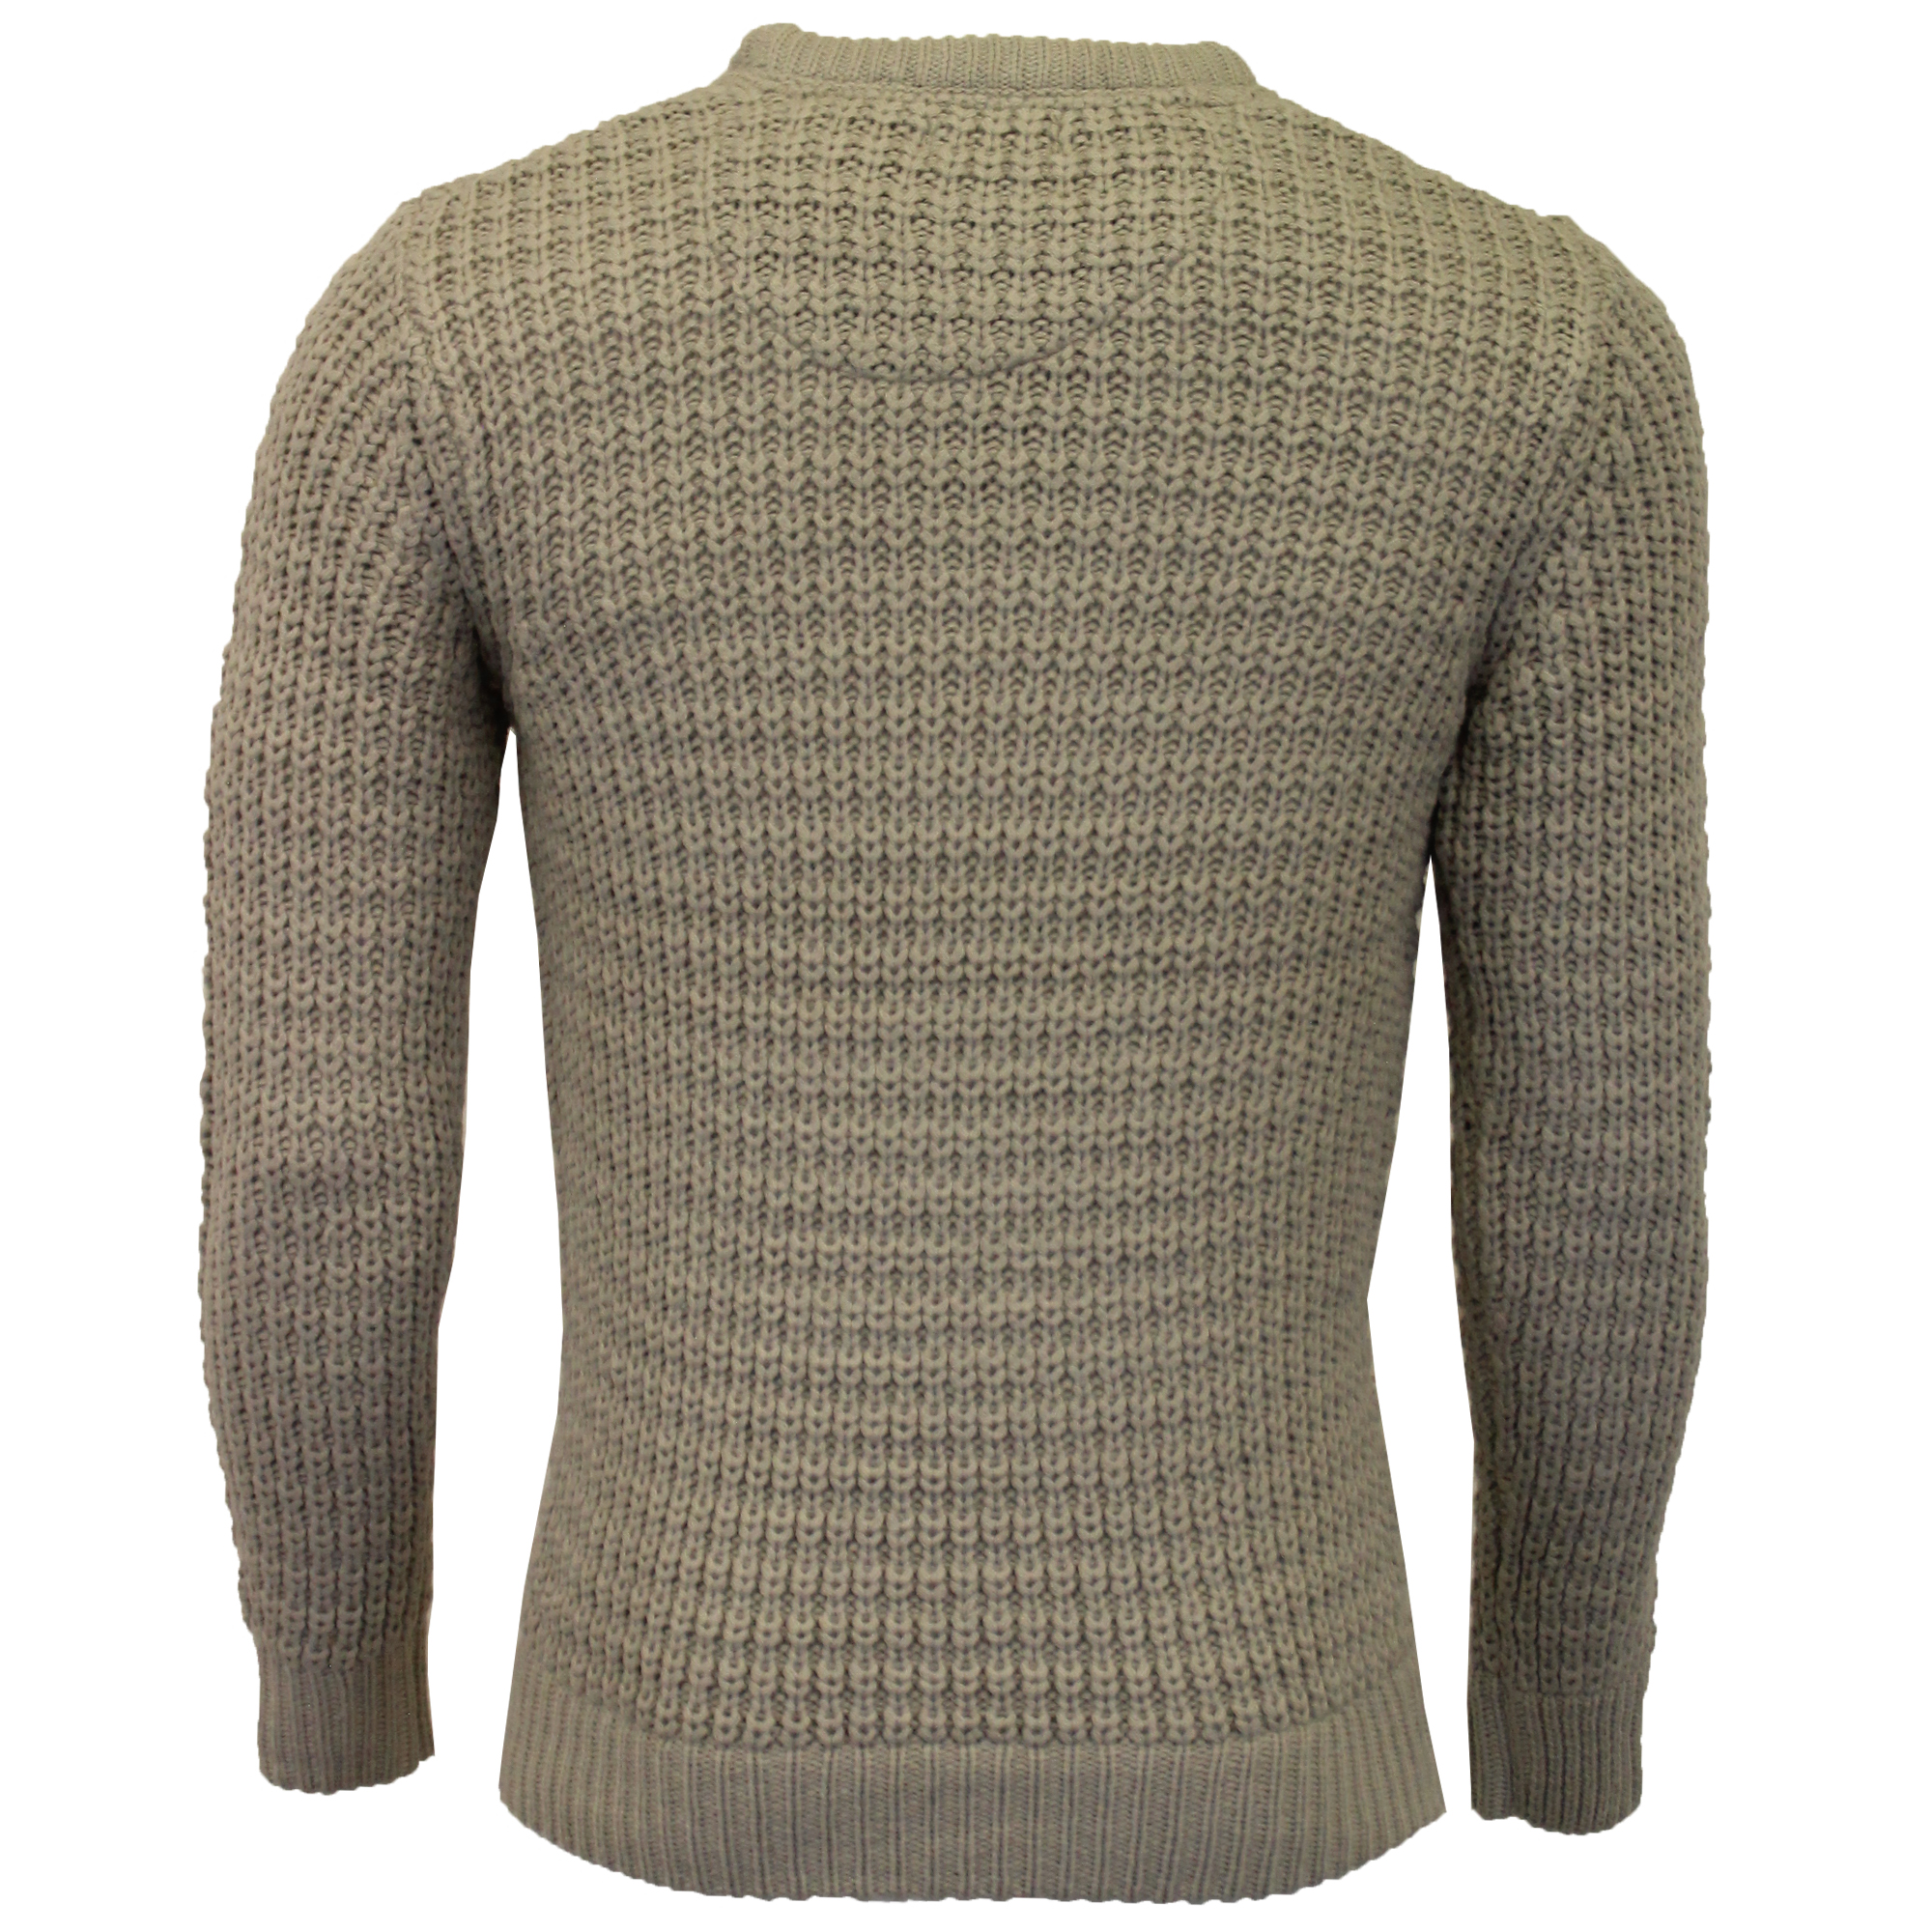 Mens-Cable-Knitted-Jumper-Brave-Soul-DIRAC-Crew-Neck-Pullover-Top-Winter-Fashion thumbnail 3